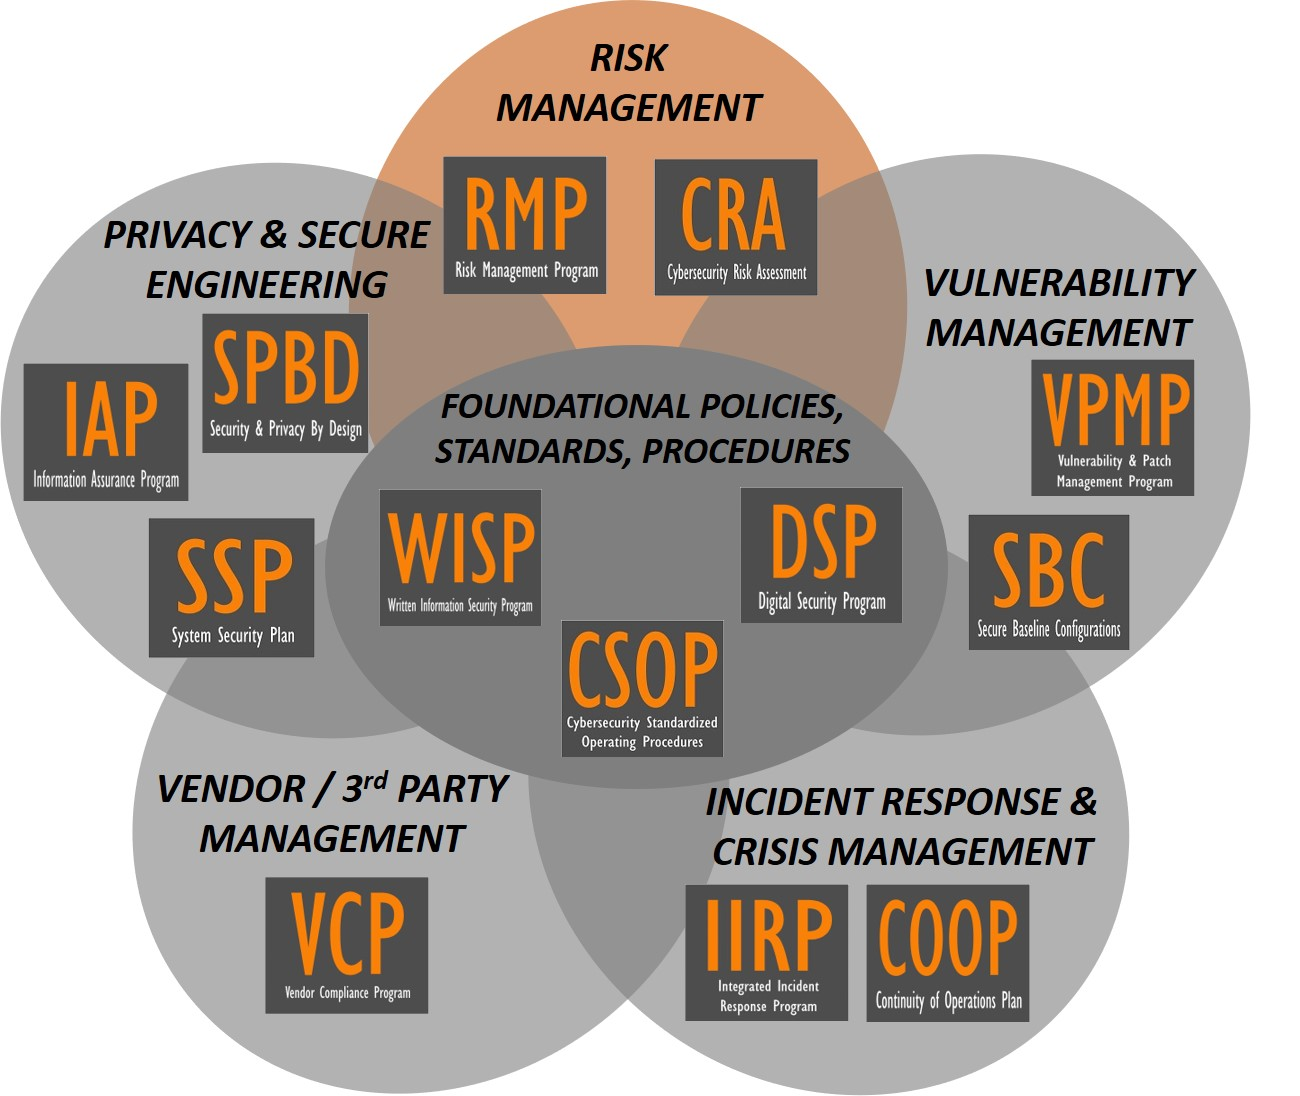 product-selection-2020.1-cybersecurity-audit-preparation-risk-management-program-risk-assessment-template.jpg